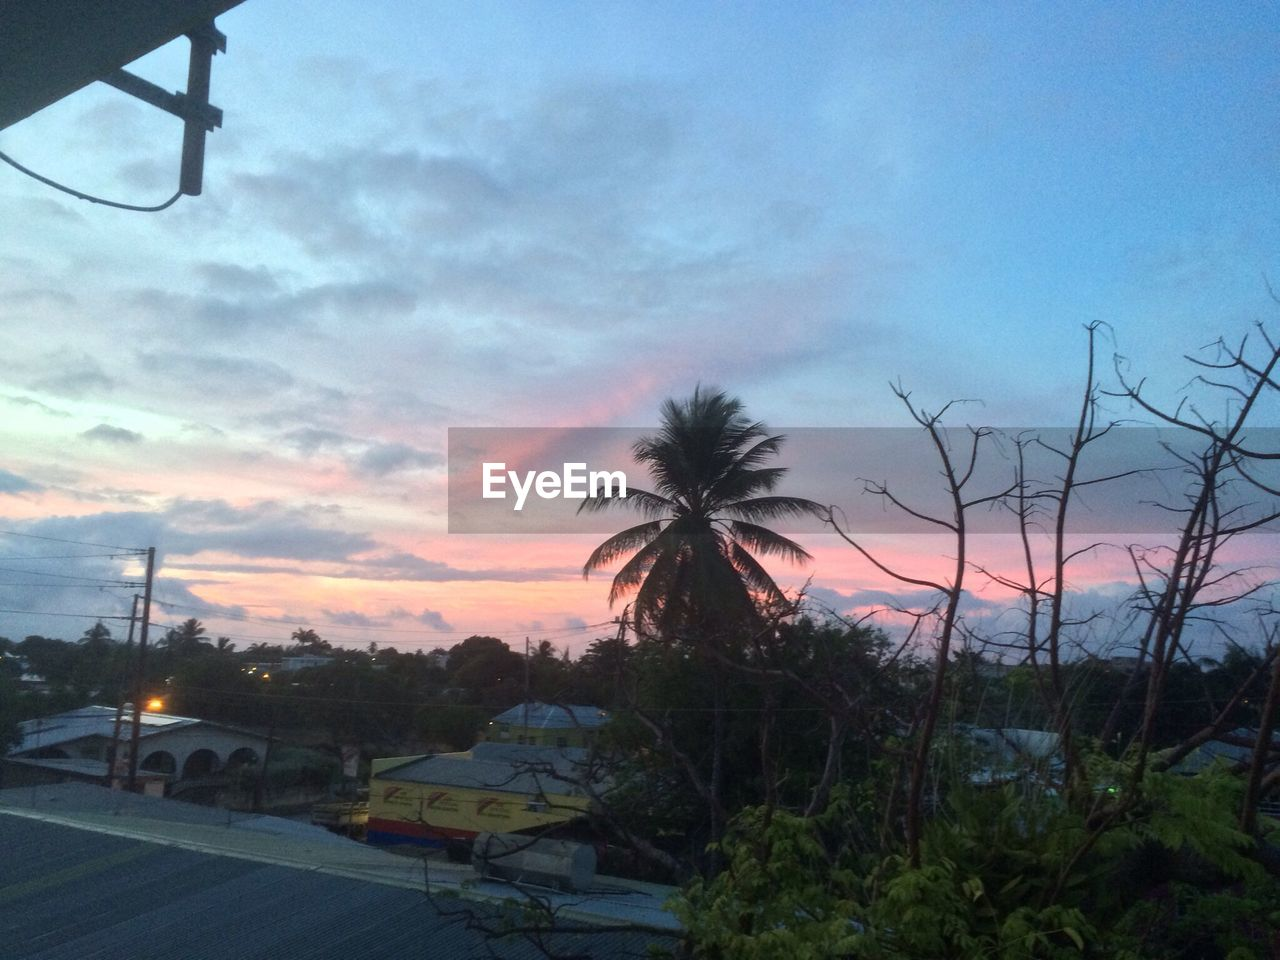 sky, sunset, car, transportation, mode of transport, cloud - sky, no people, nature, land vehicle, beauty in nature, outdoors, built structure, tree, scenics, palm tree, building exterior, day